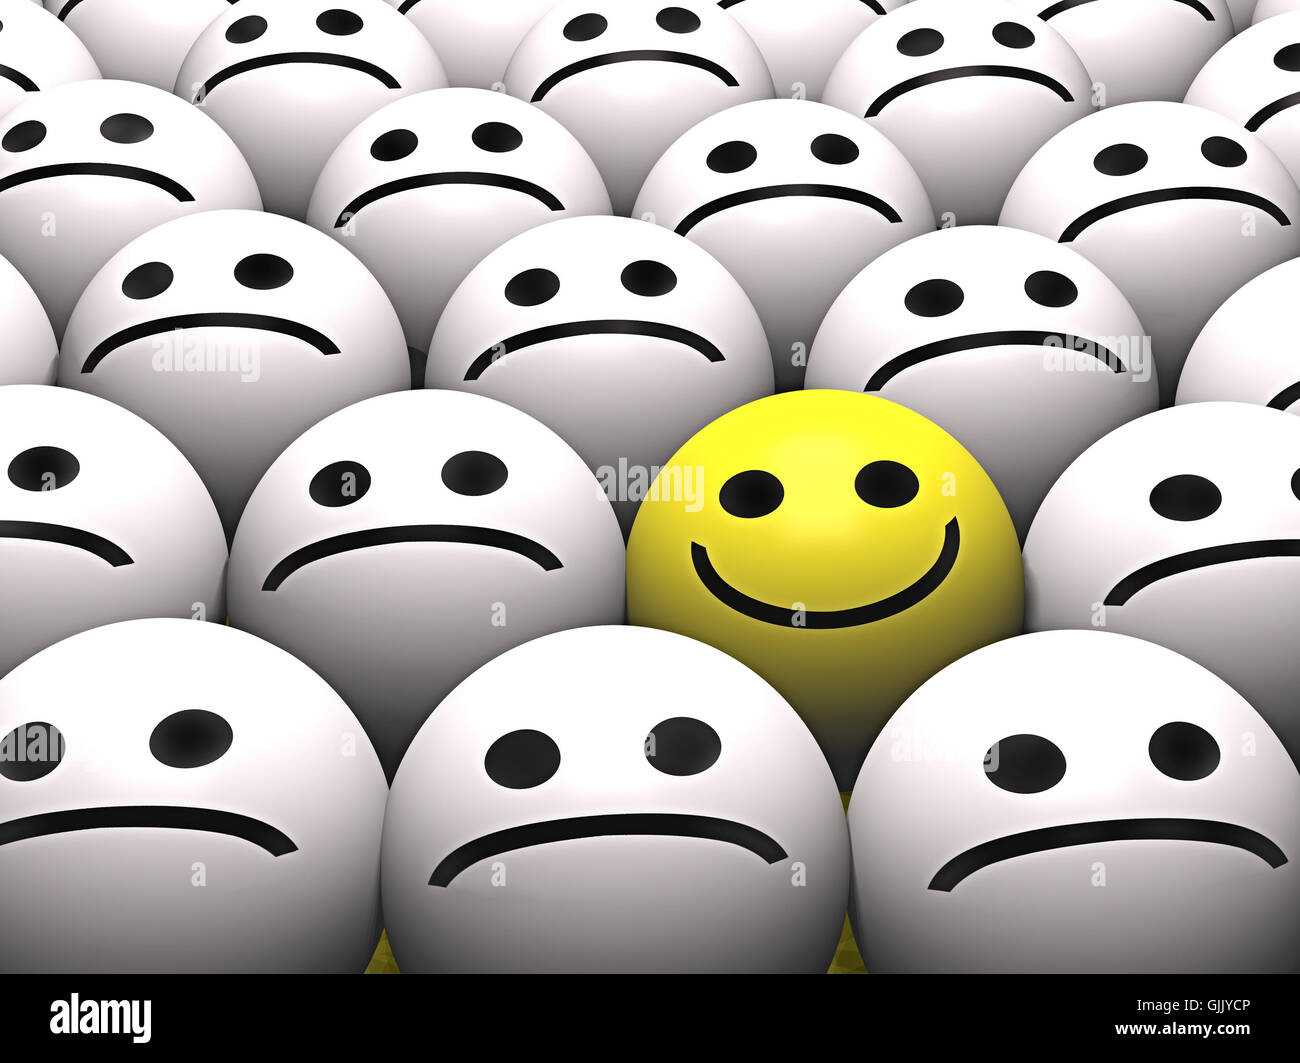 smiley delighted unambitious - Stock Image